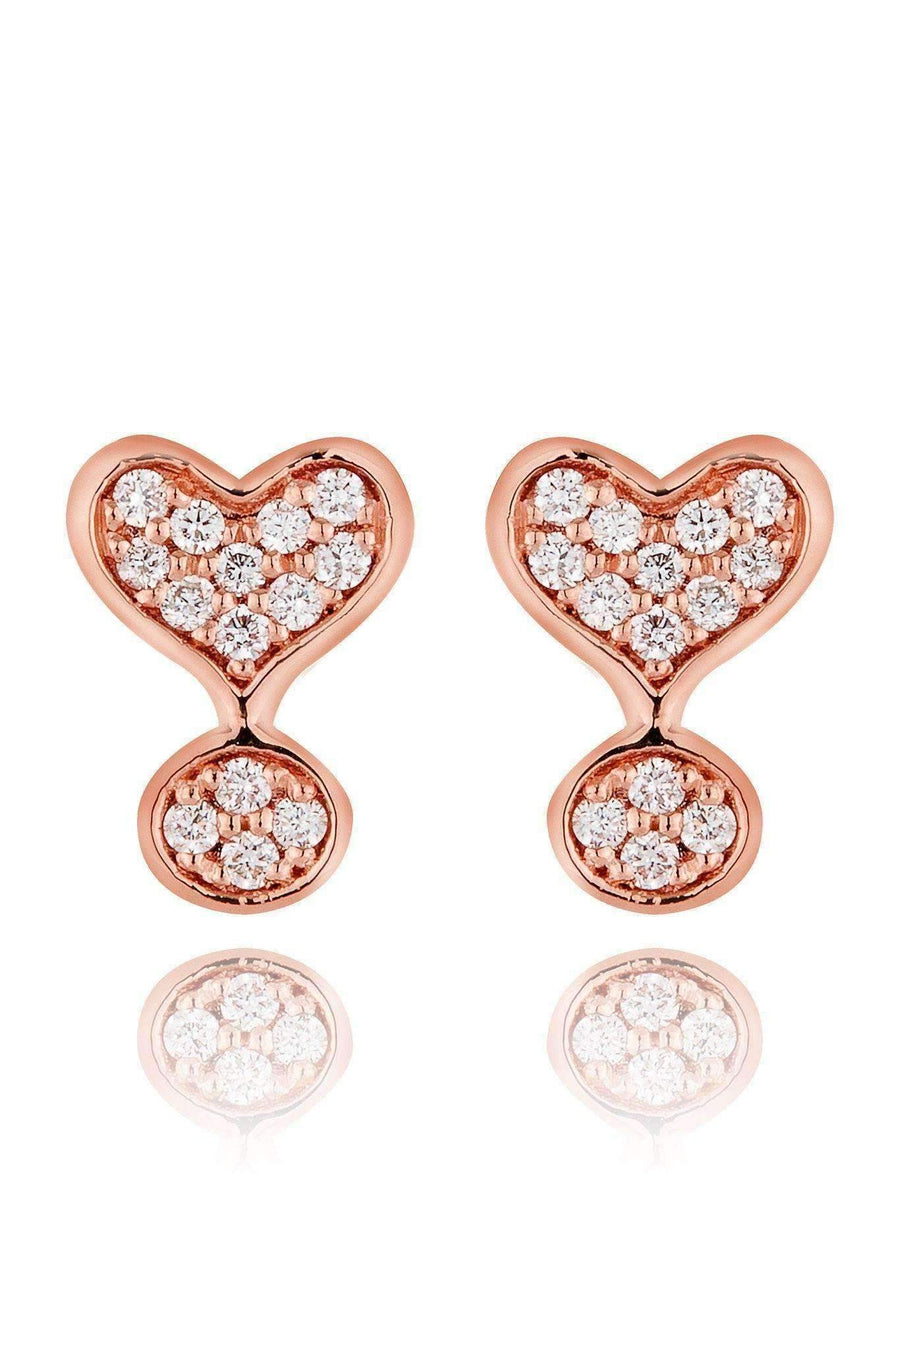 Exclamation Diamond Pavé Stud Earrings Earrings Lark and Berry Rose Gold